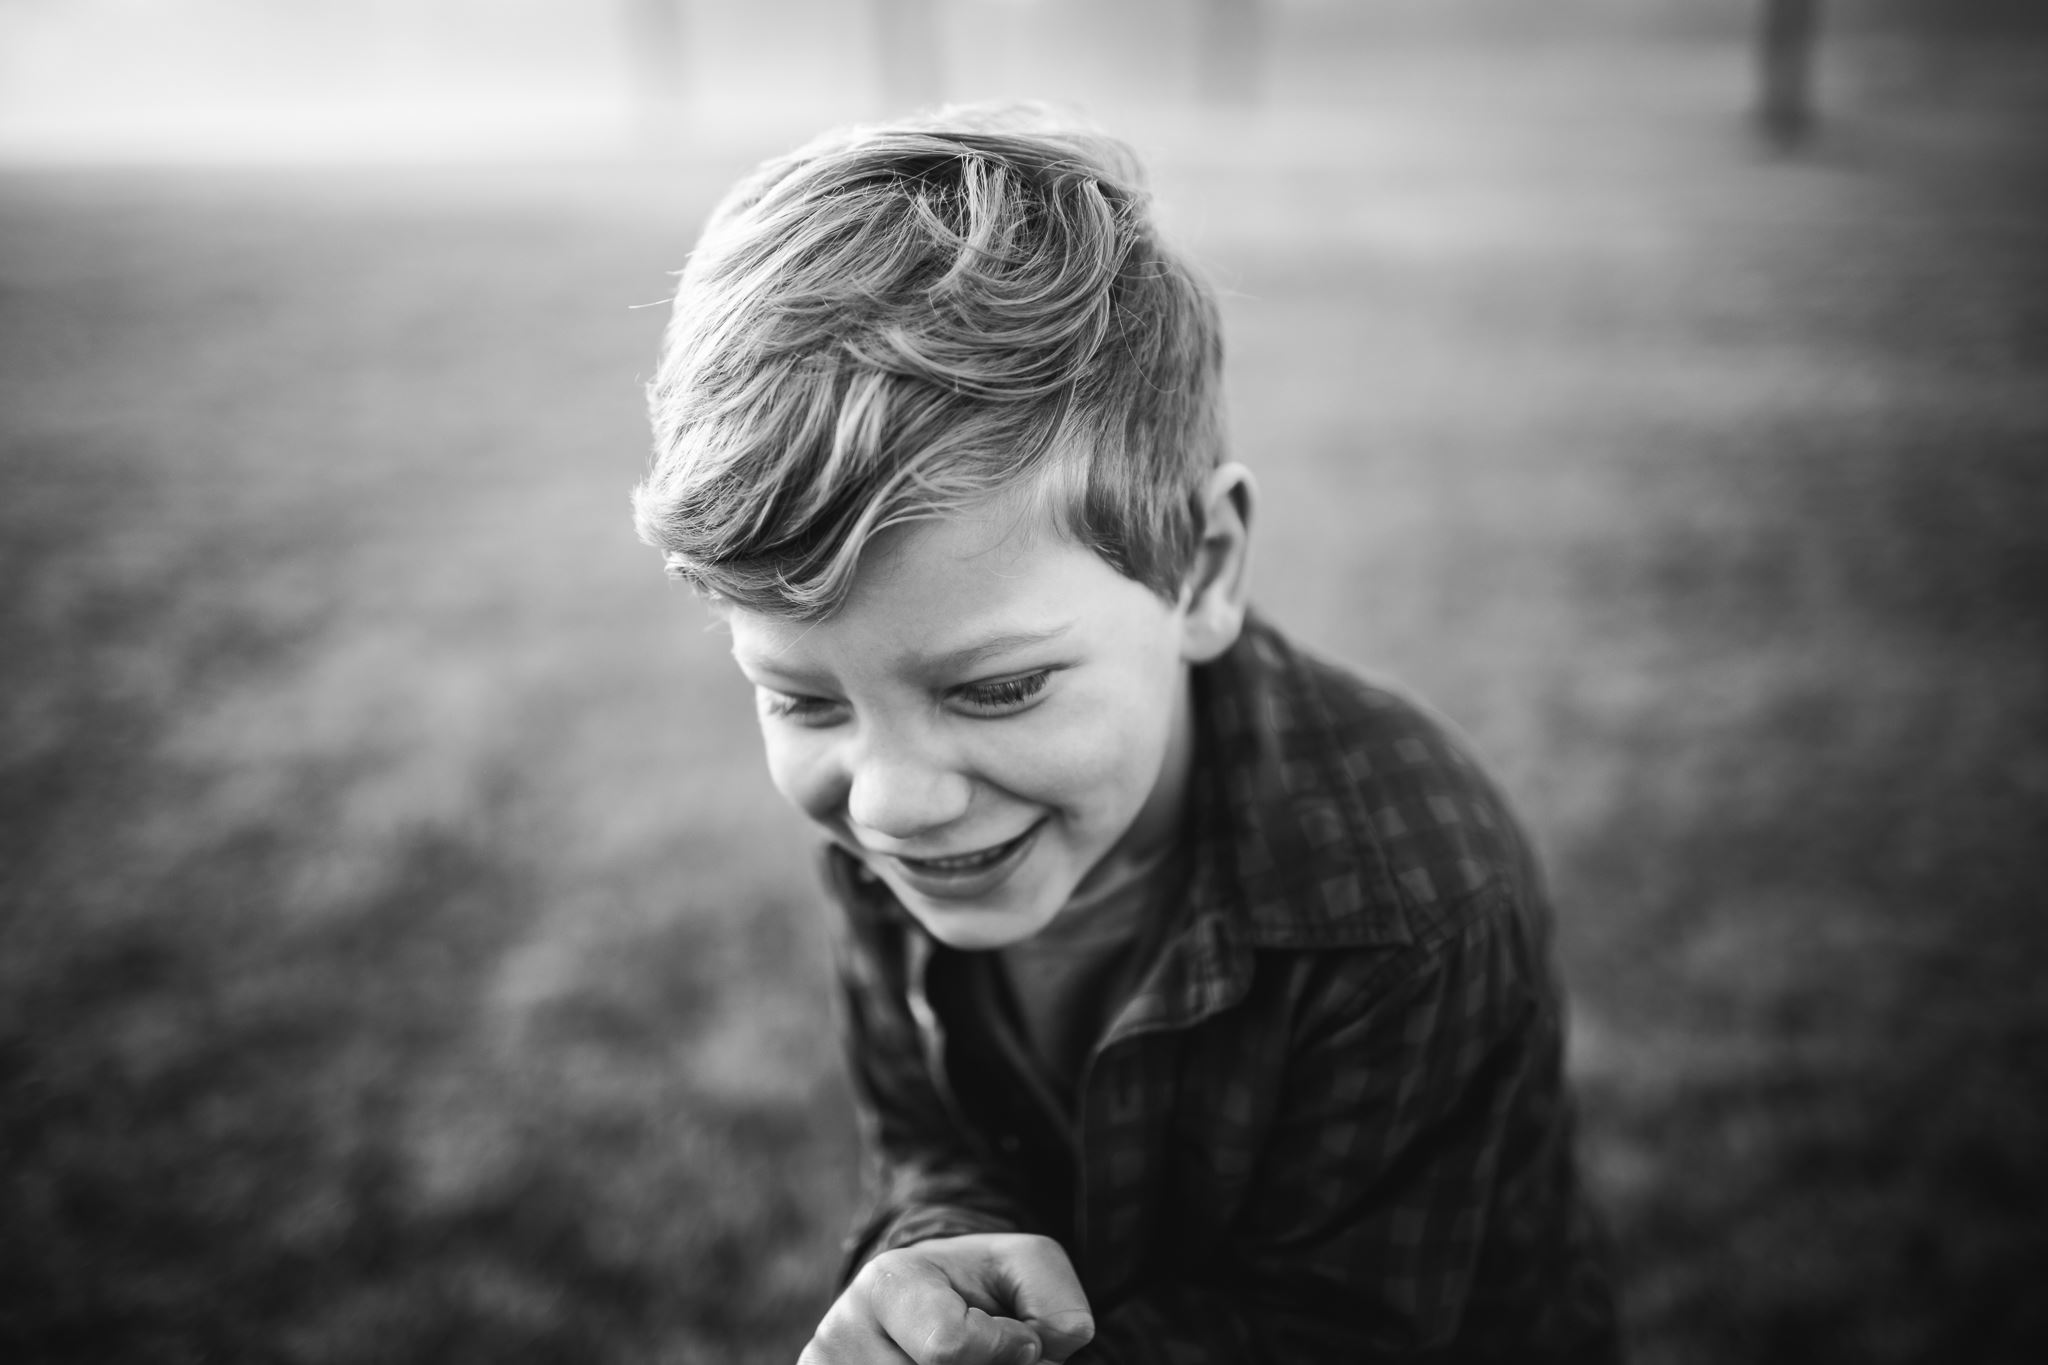 Photo of boy smiling